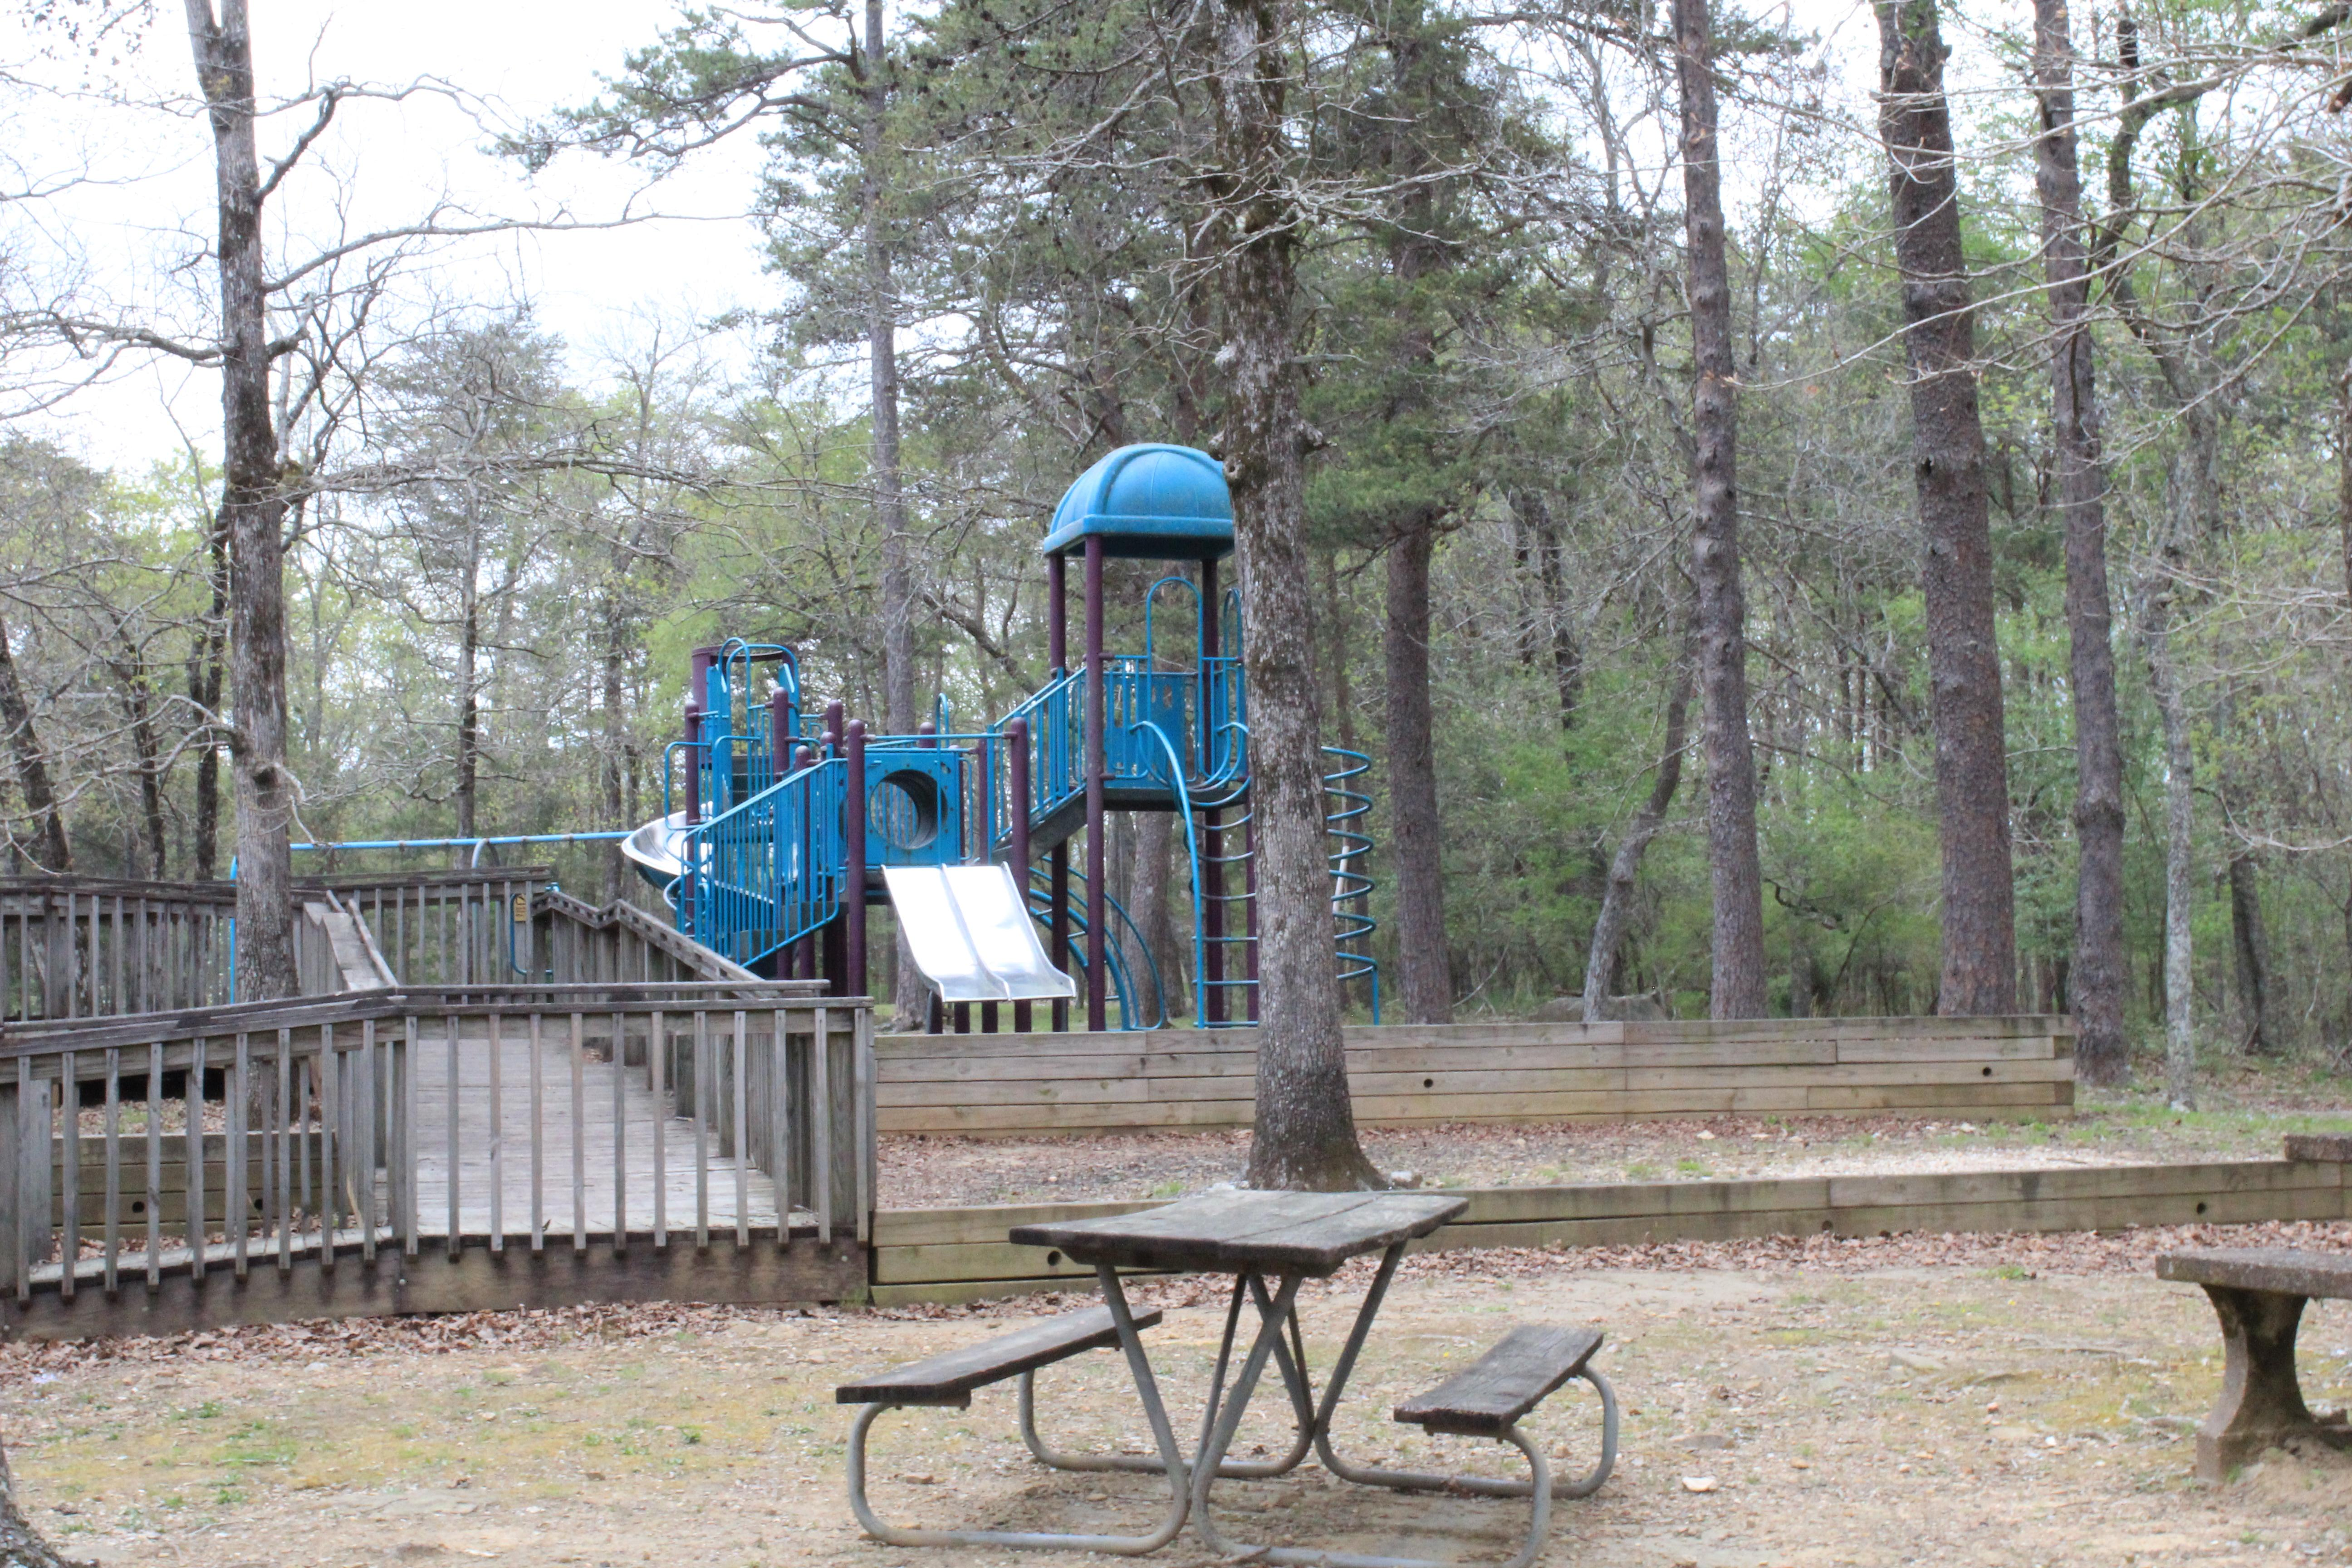 Picnic Area Playground